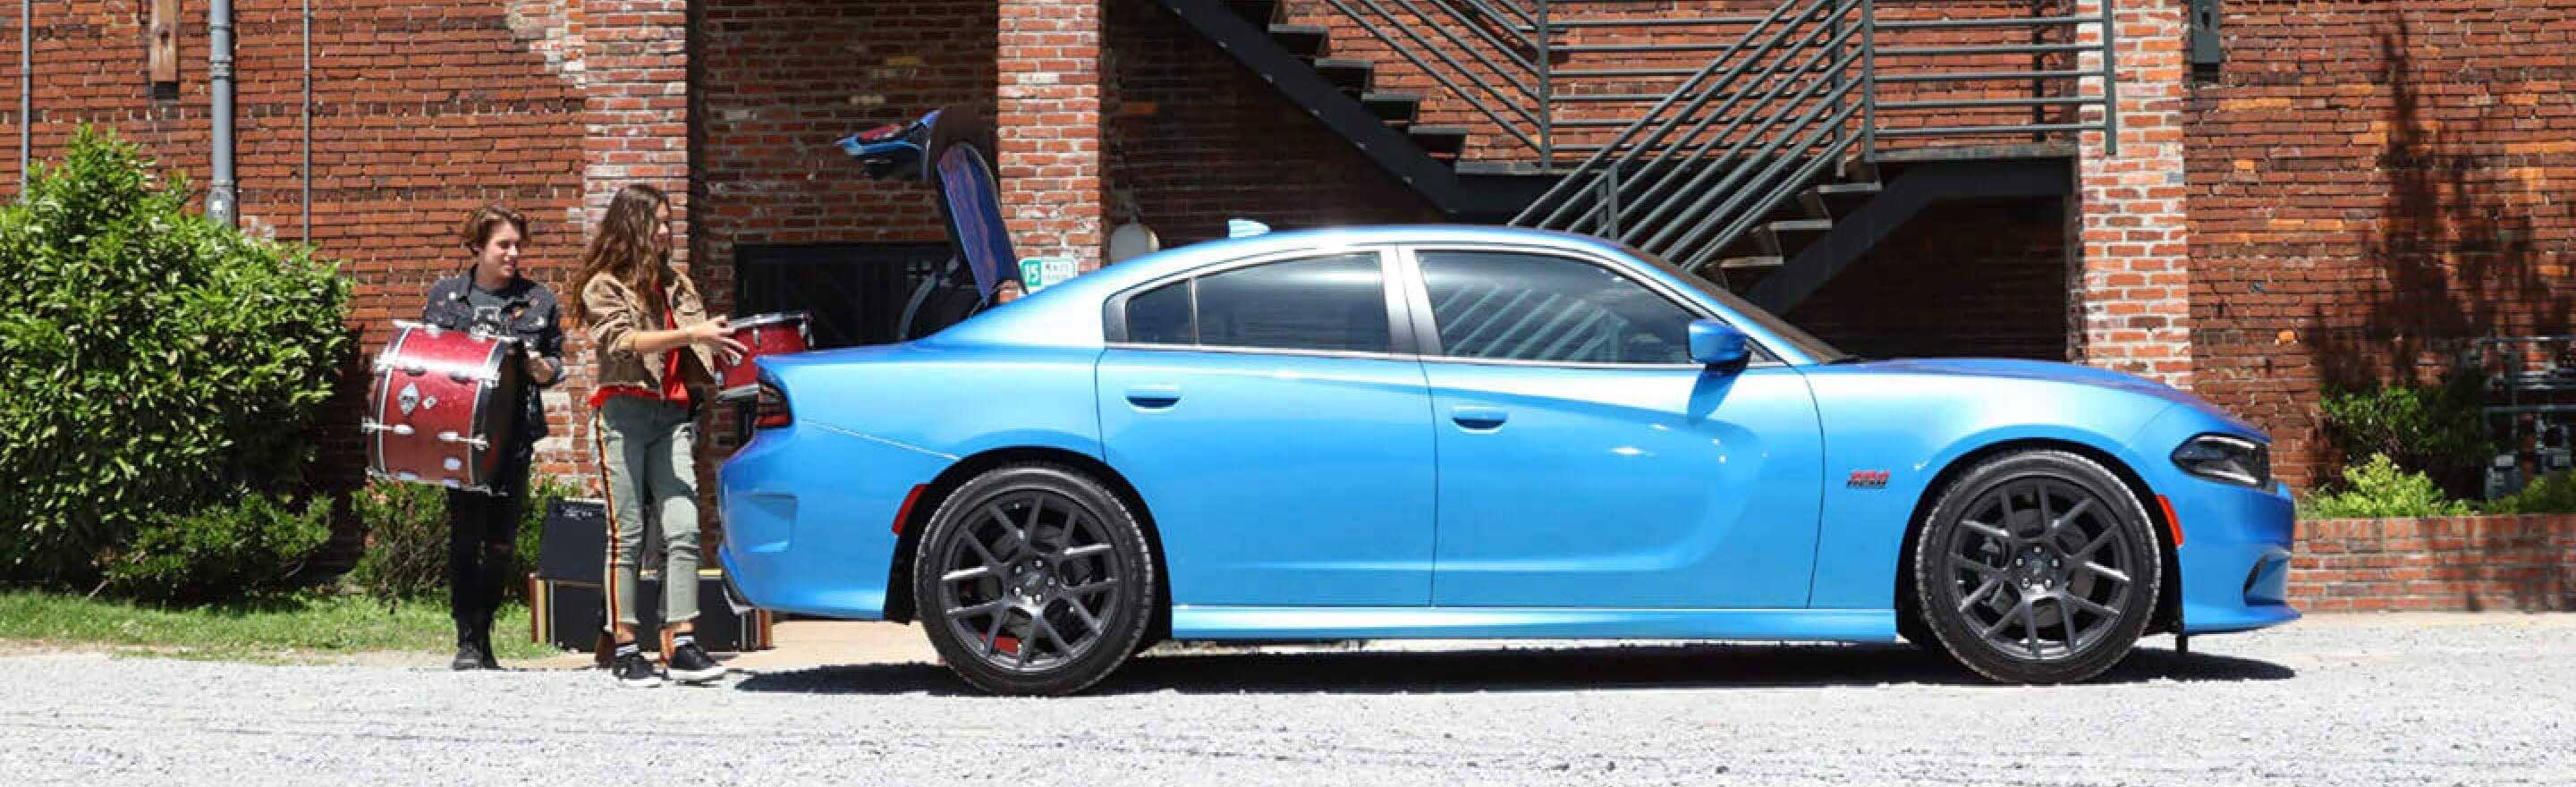 The New 2019 Dodge Charger Is Now Available In New Iberia, LA